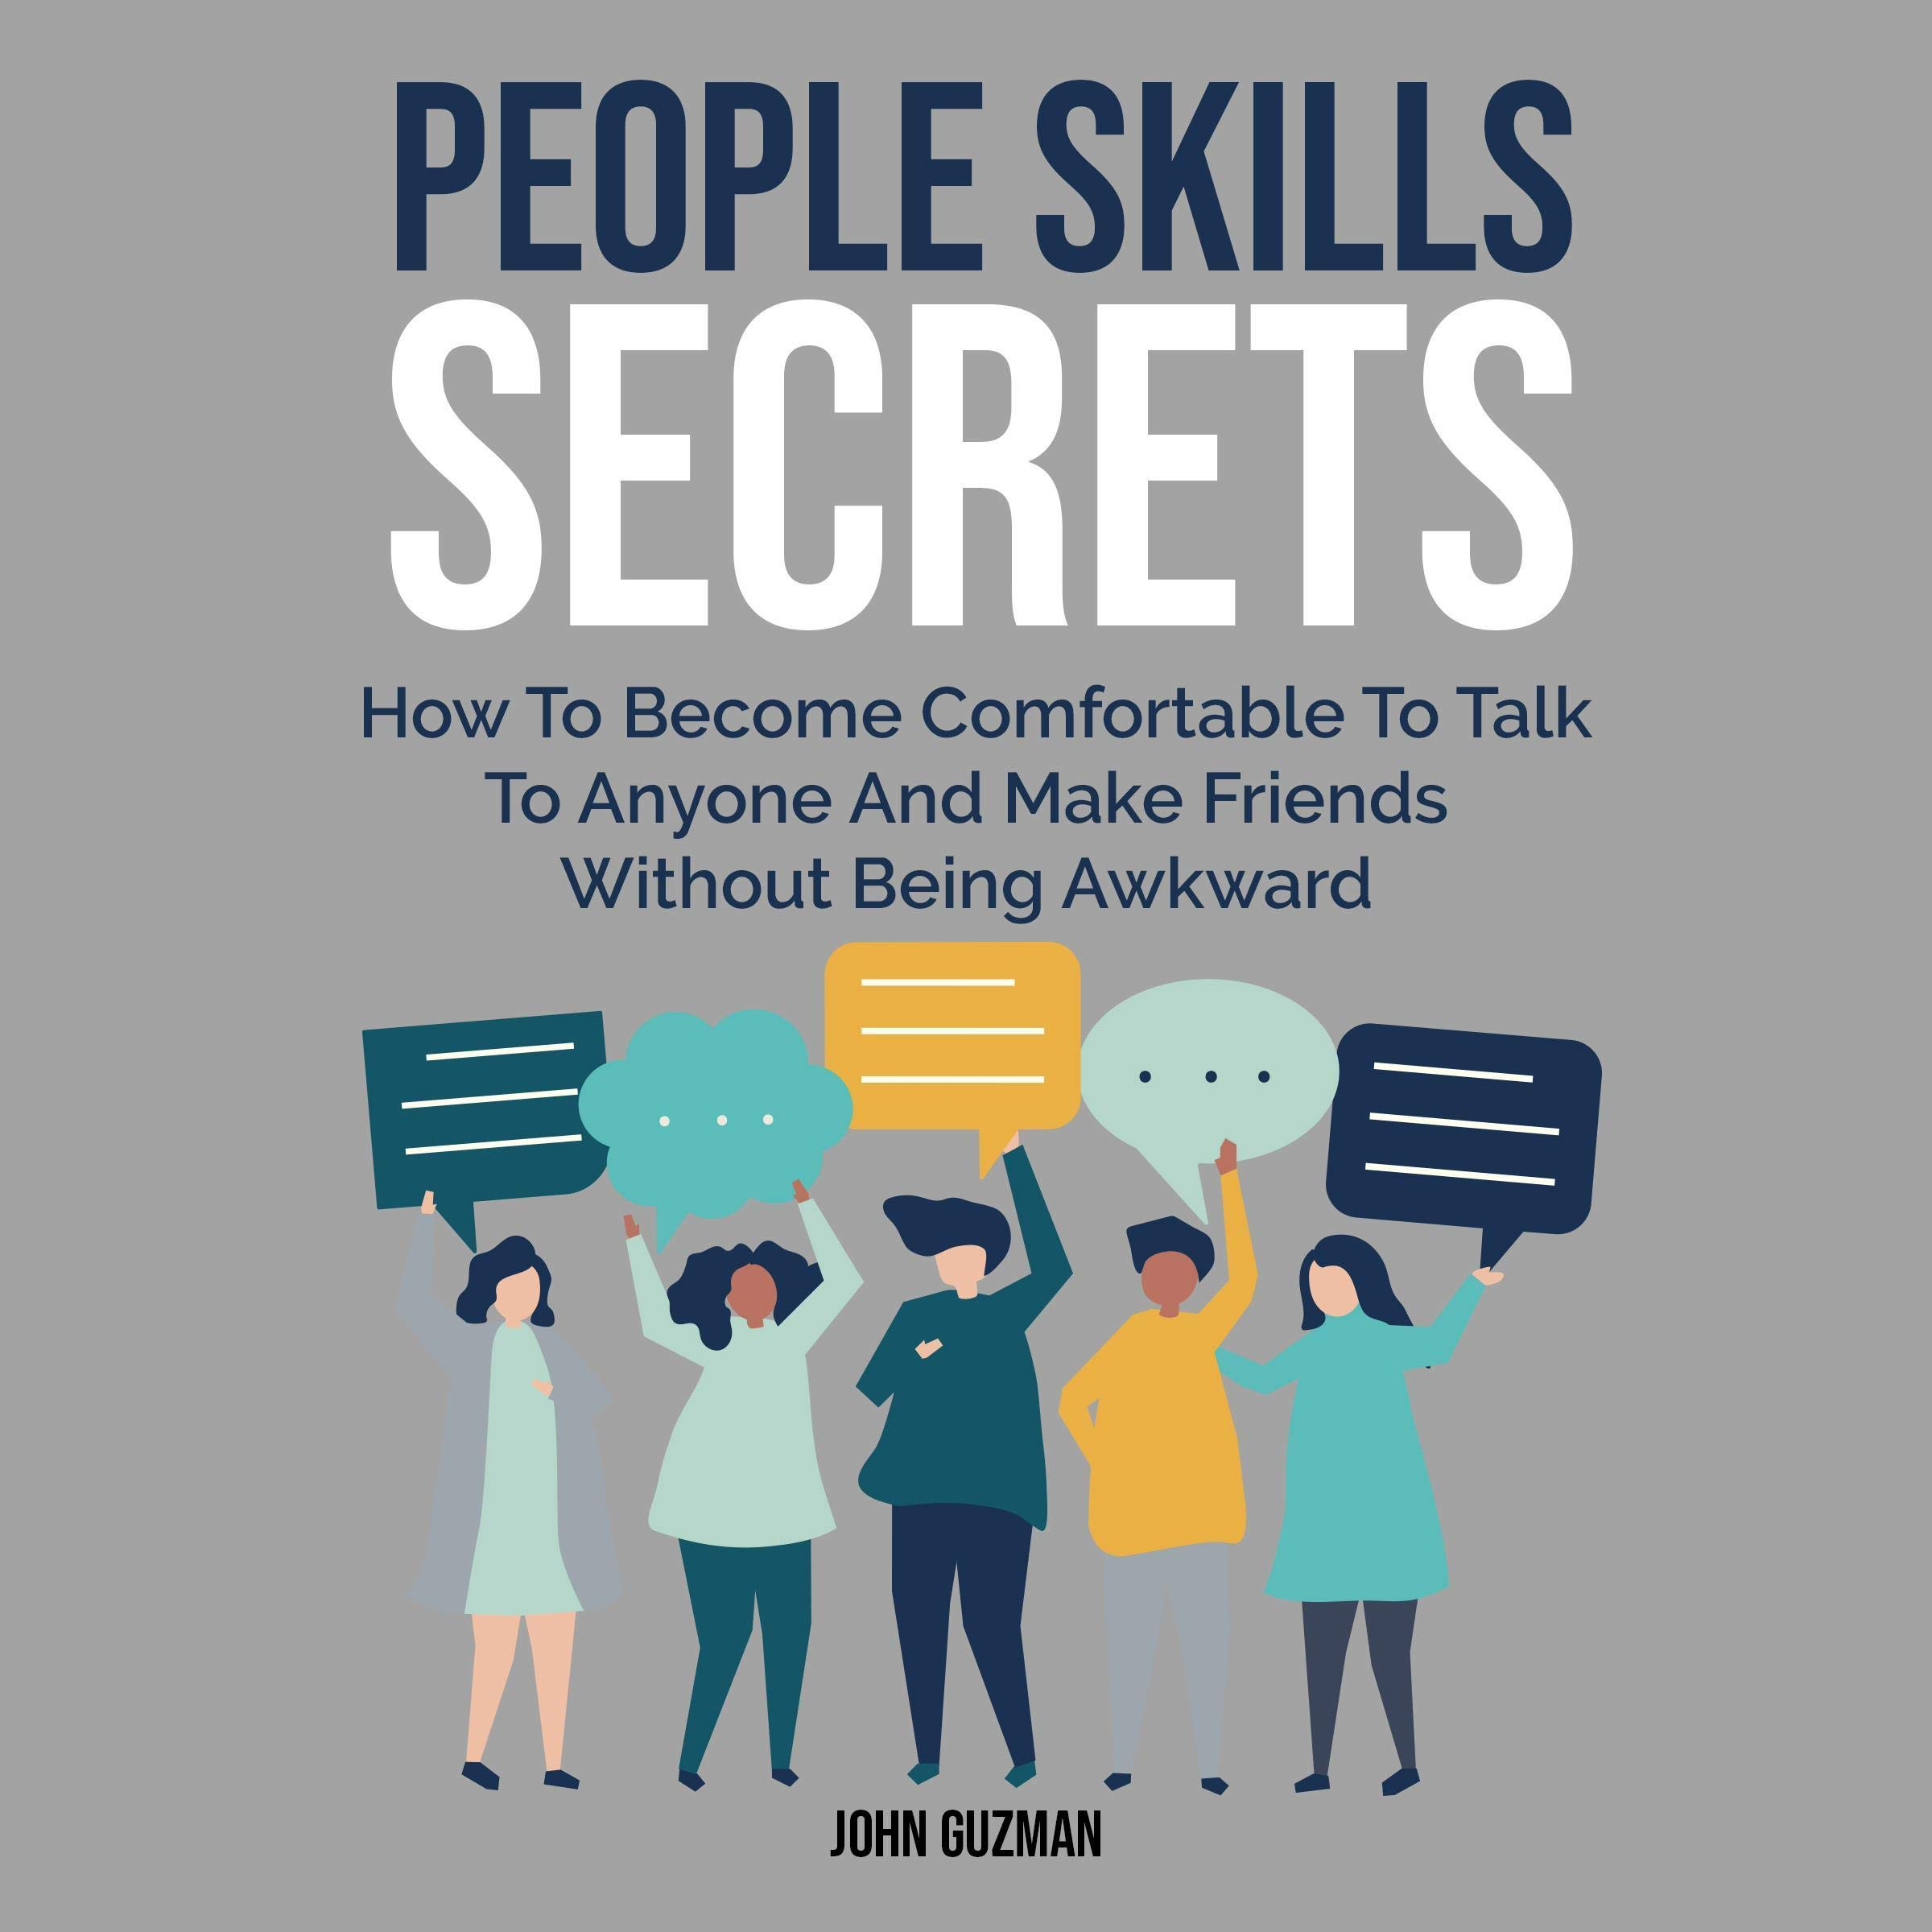 Download People Skills Secrets: How To Become Comfortable To Talk To Anyone And Make Friends Without Being Awkward 